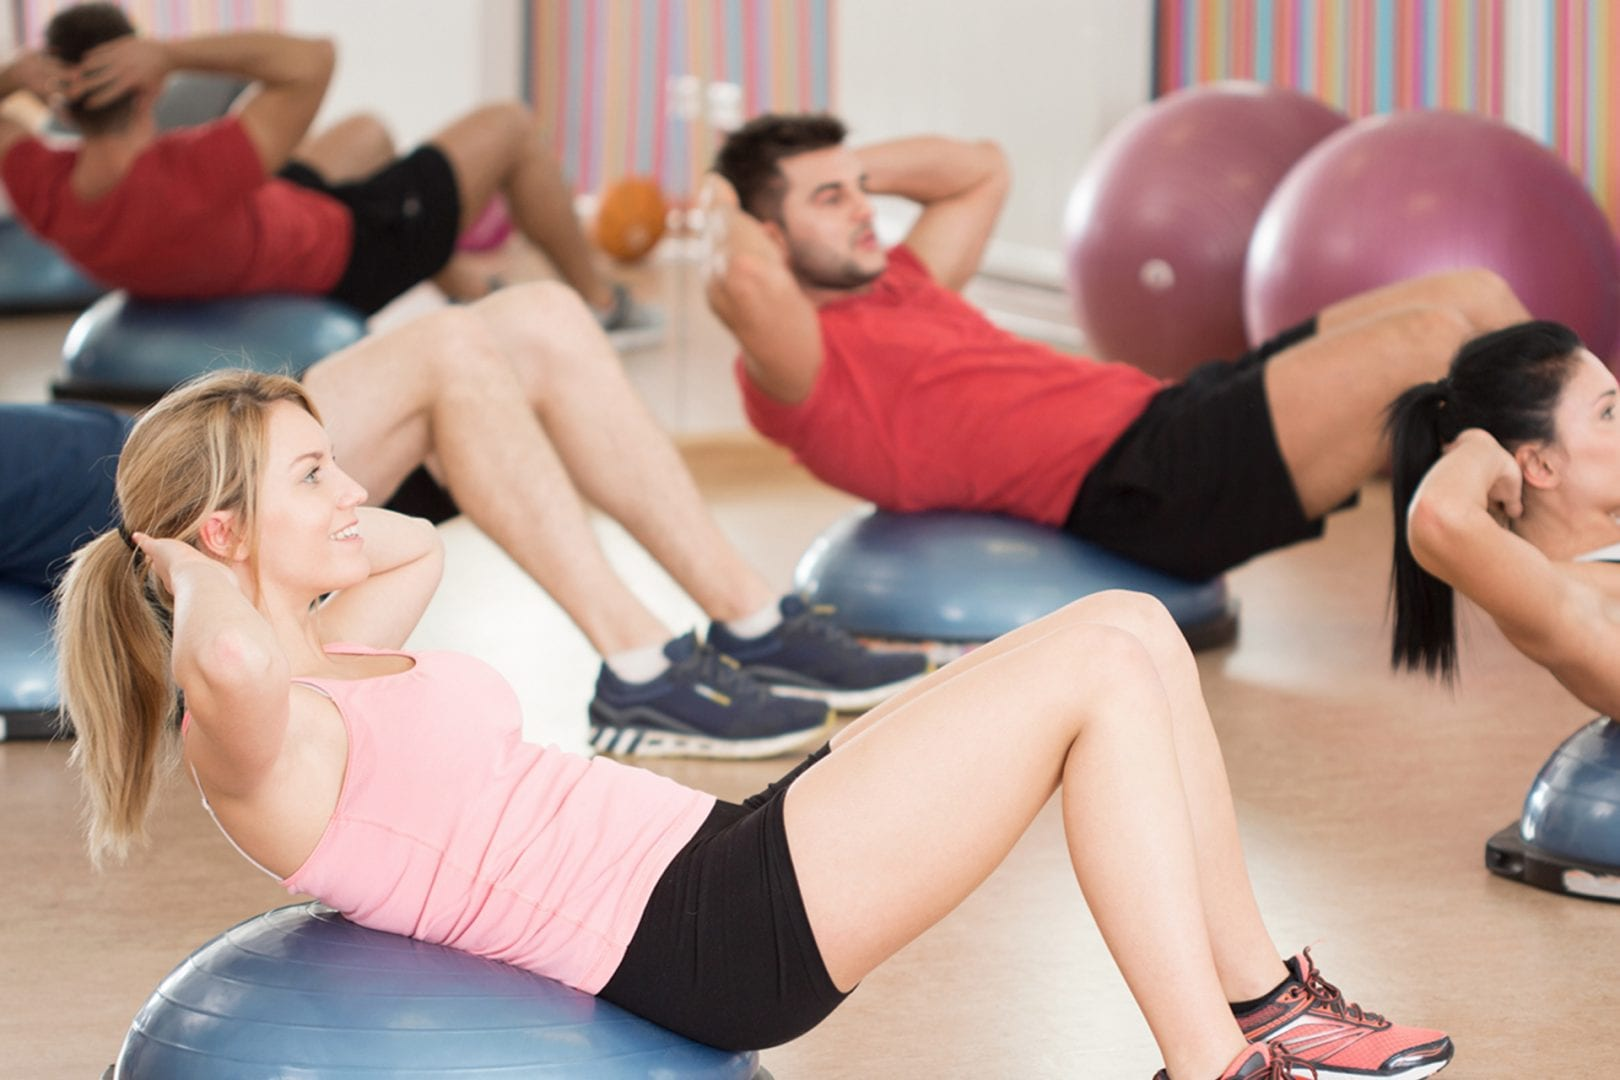 gym-members-in-group-cardio-classes-laying-on-gym-balls-doing-sit-ups-in-fitness-center-studio